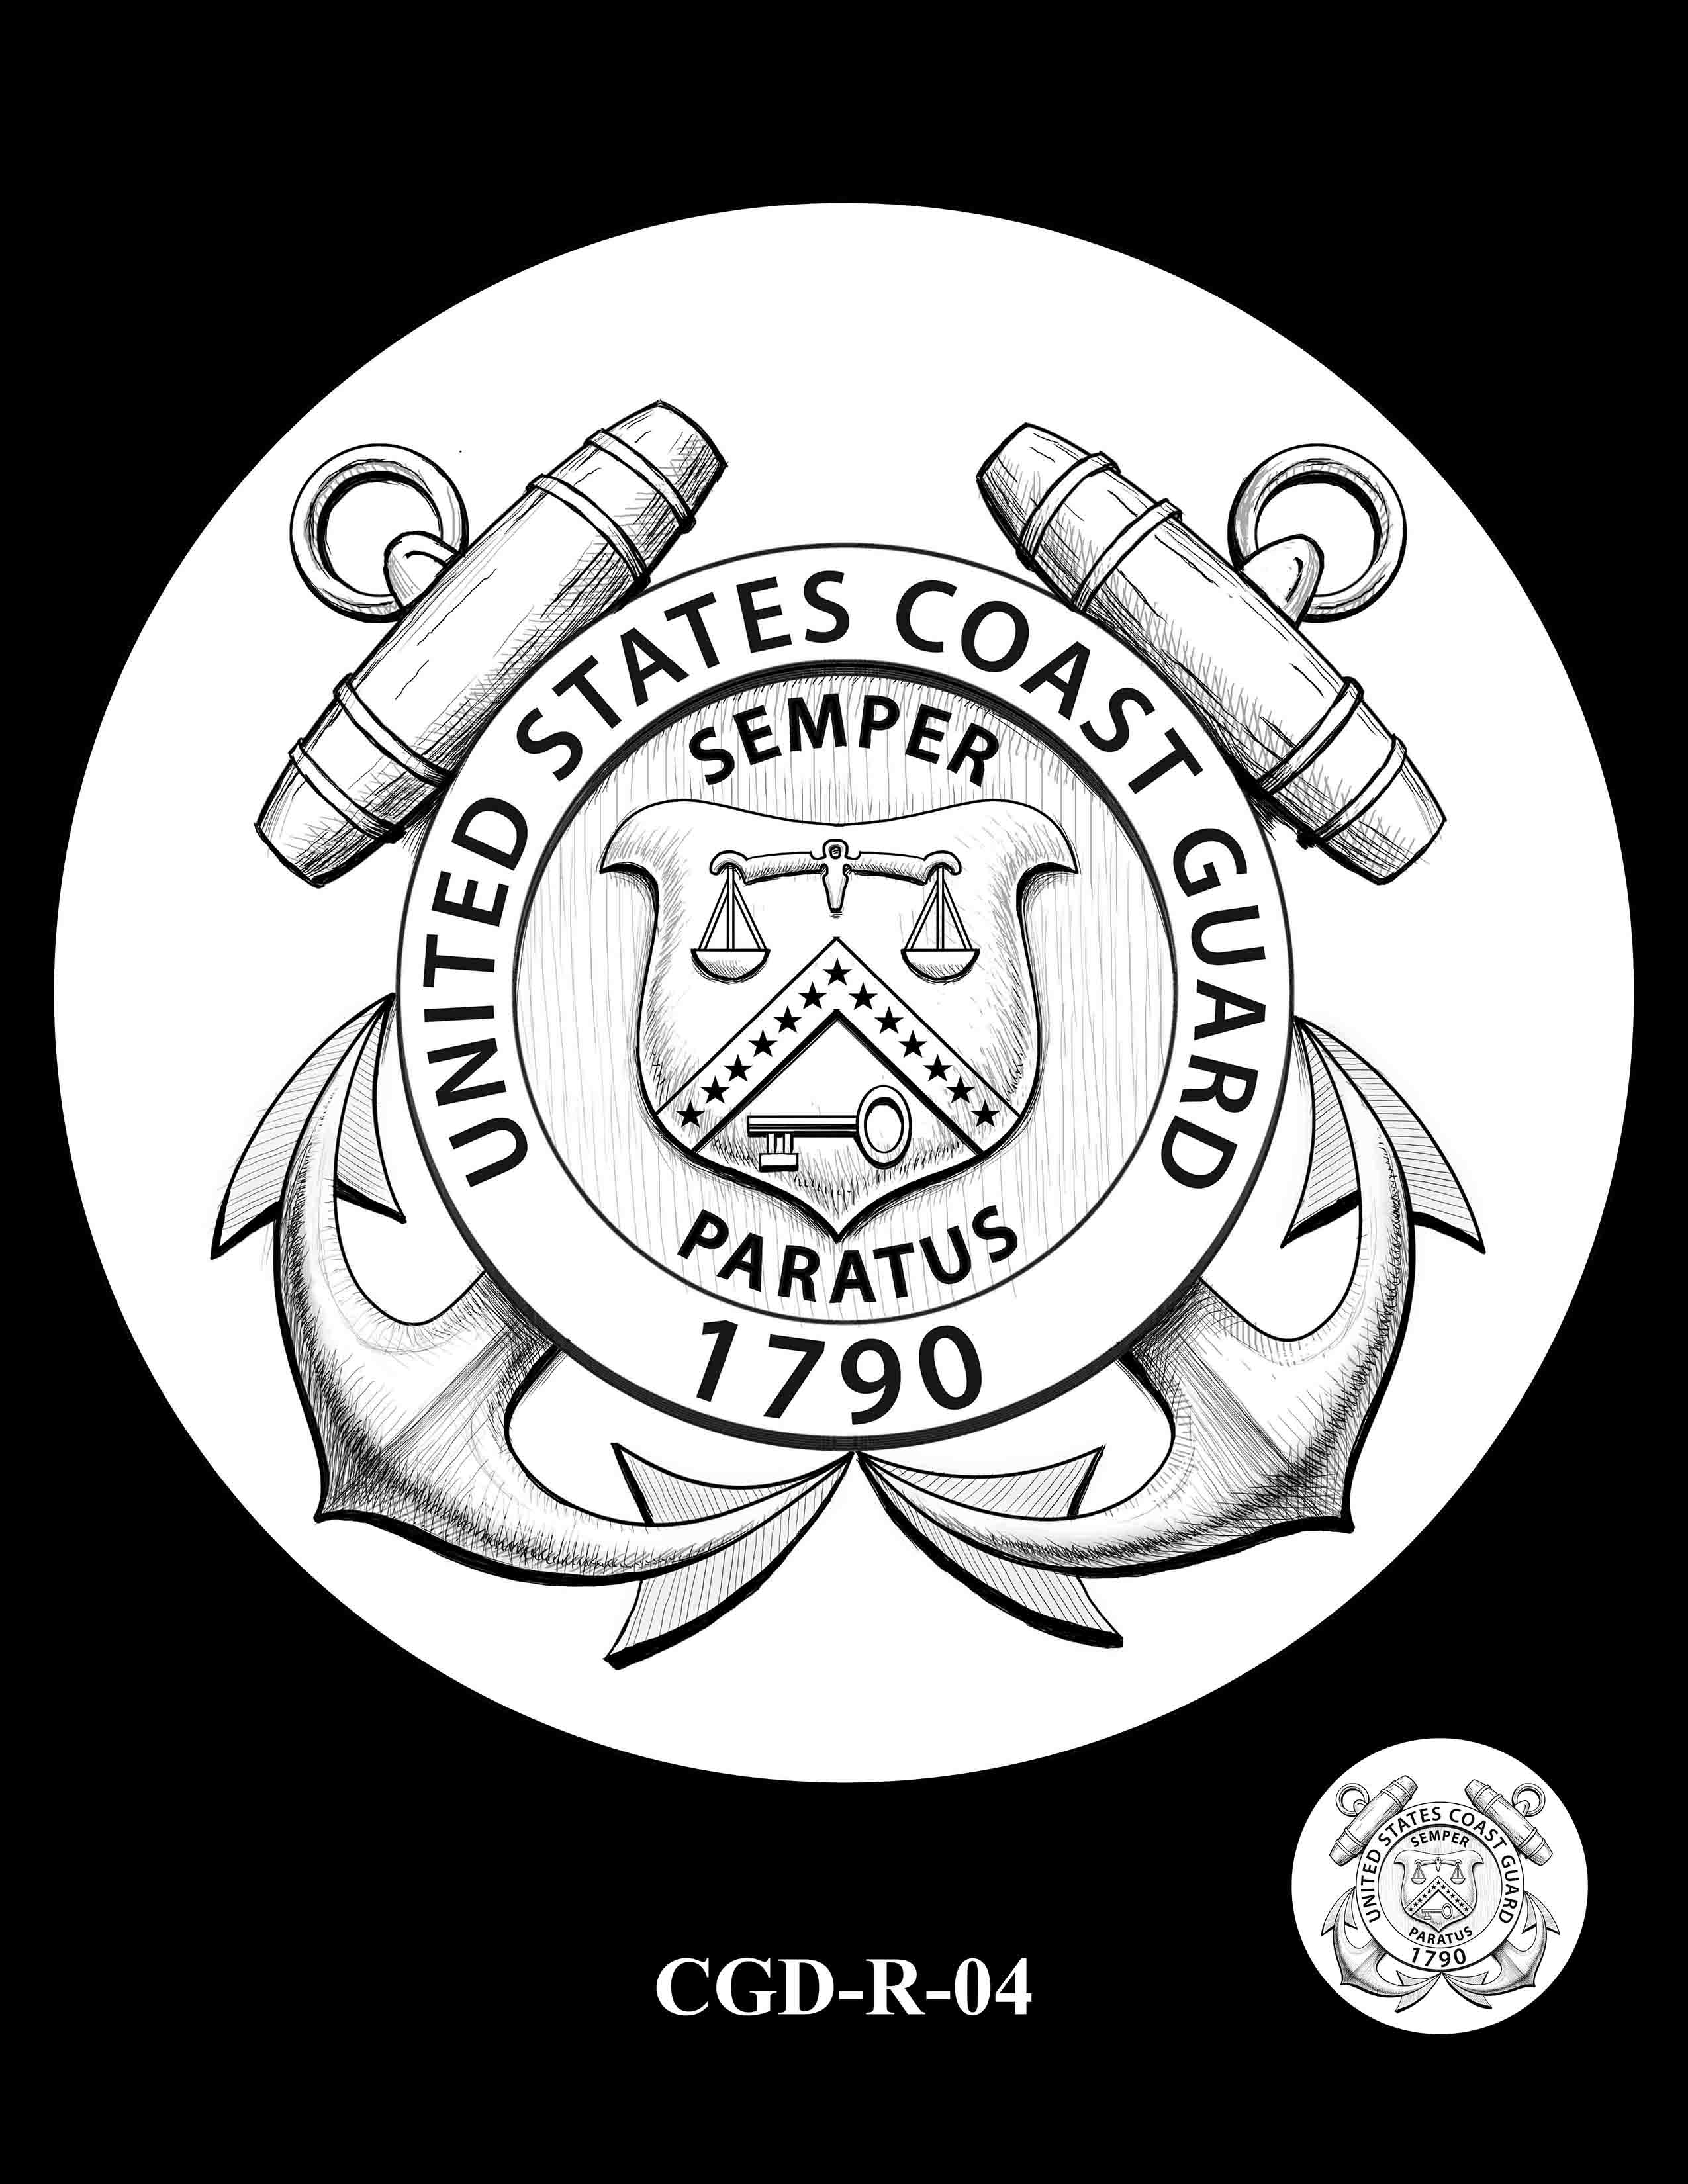 P1a-CGD-R-04 -- 2018-World War I Silver Medals - Coast Guard